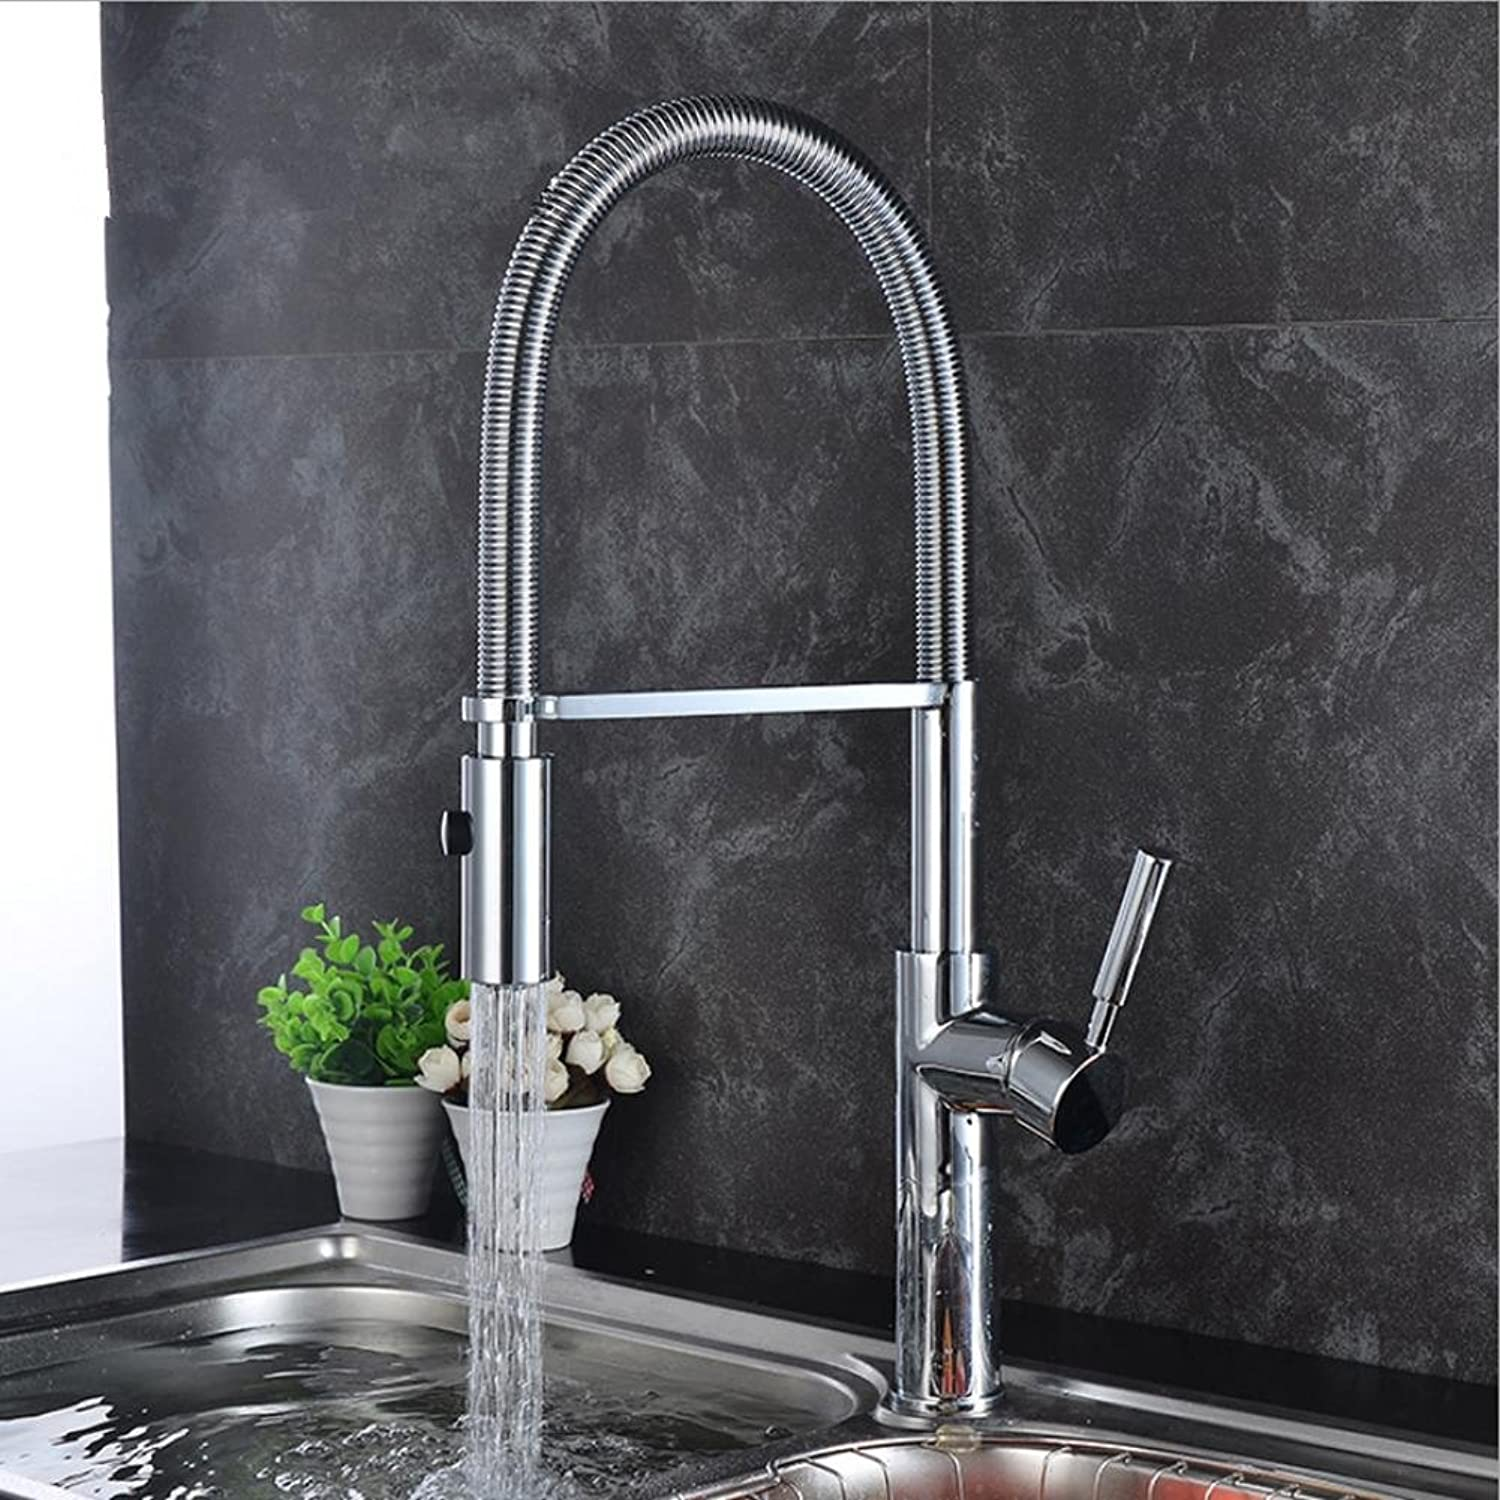 ZHIYUAN Fashion high-end ware Centerset Antique Hot and cold Single hole Faucets Retro copper Kitchen sink Mixing faucets?No delivery hose?